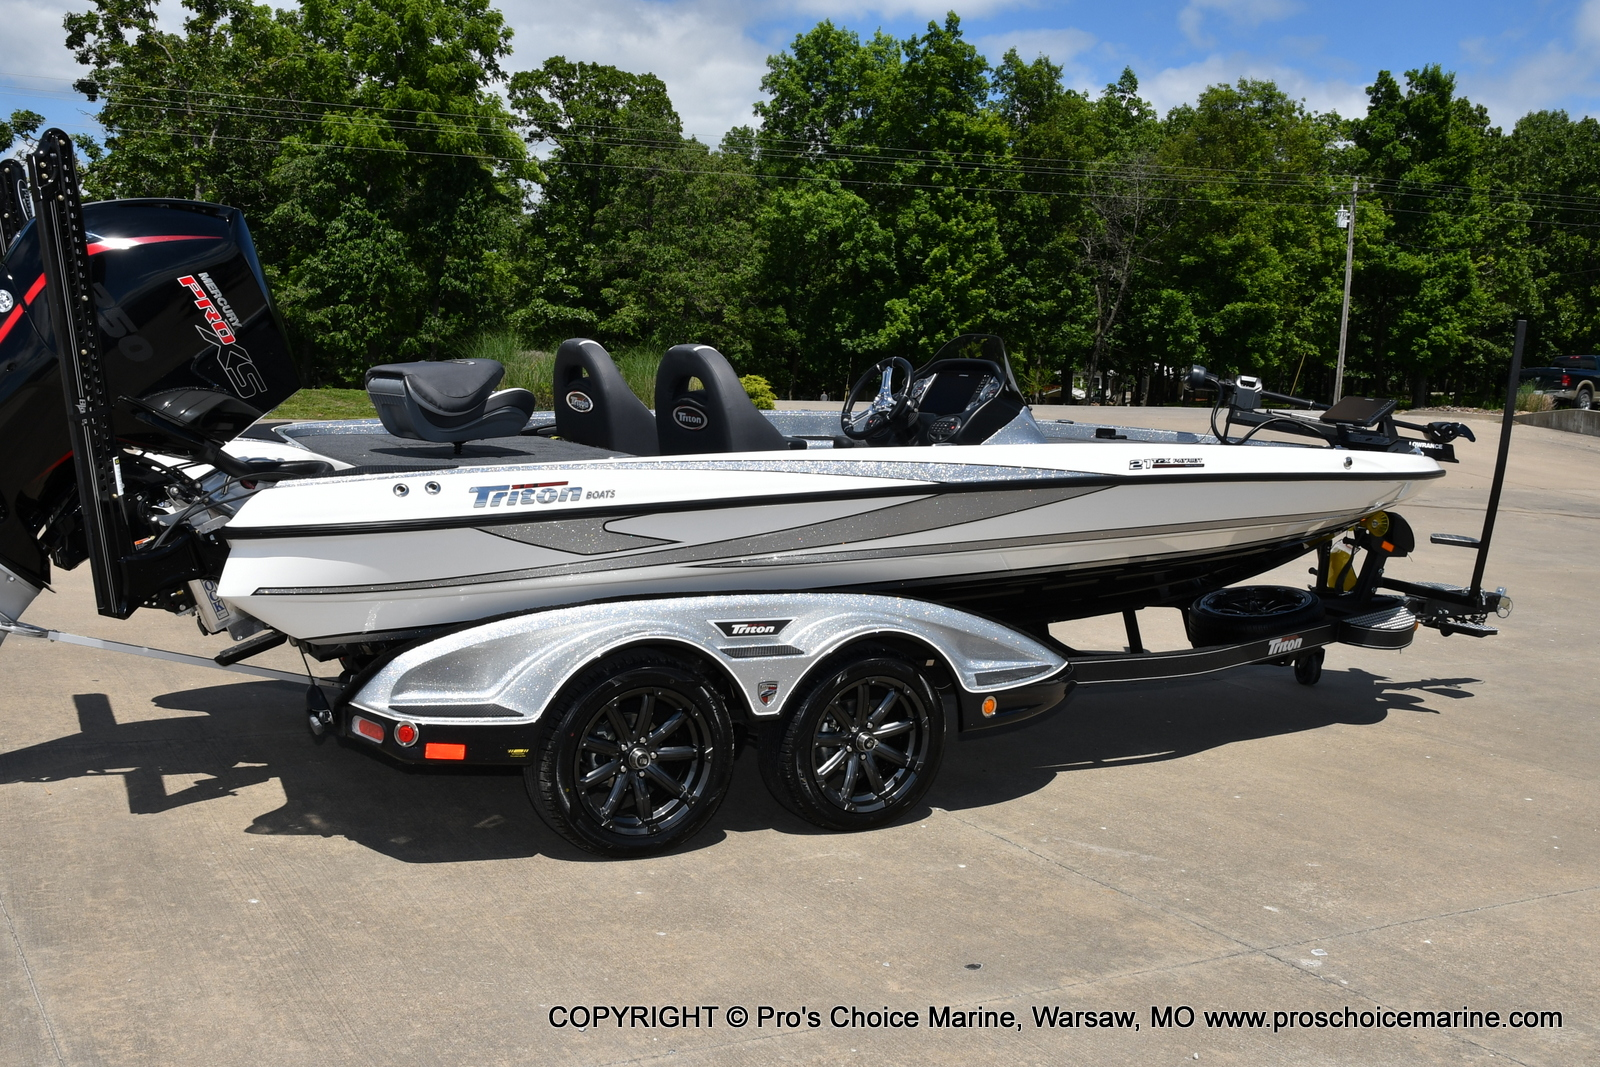 2021 Triton boat for sale, model of the boat is 21 TRX Patriot & Image # 29 of 50